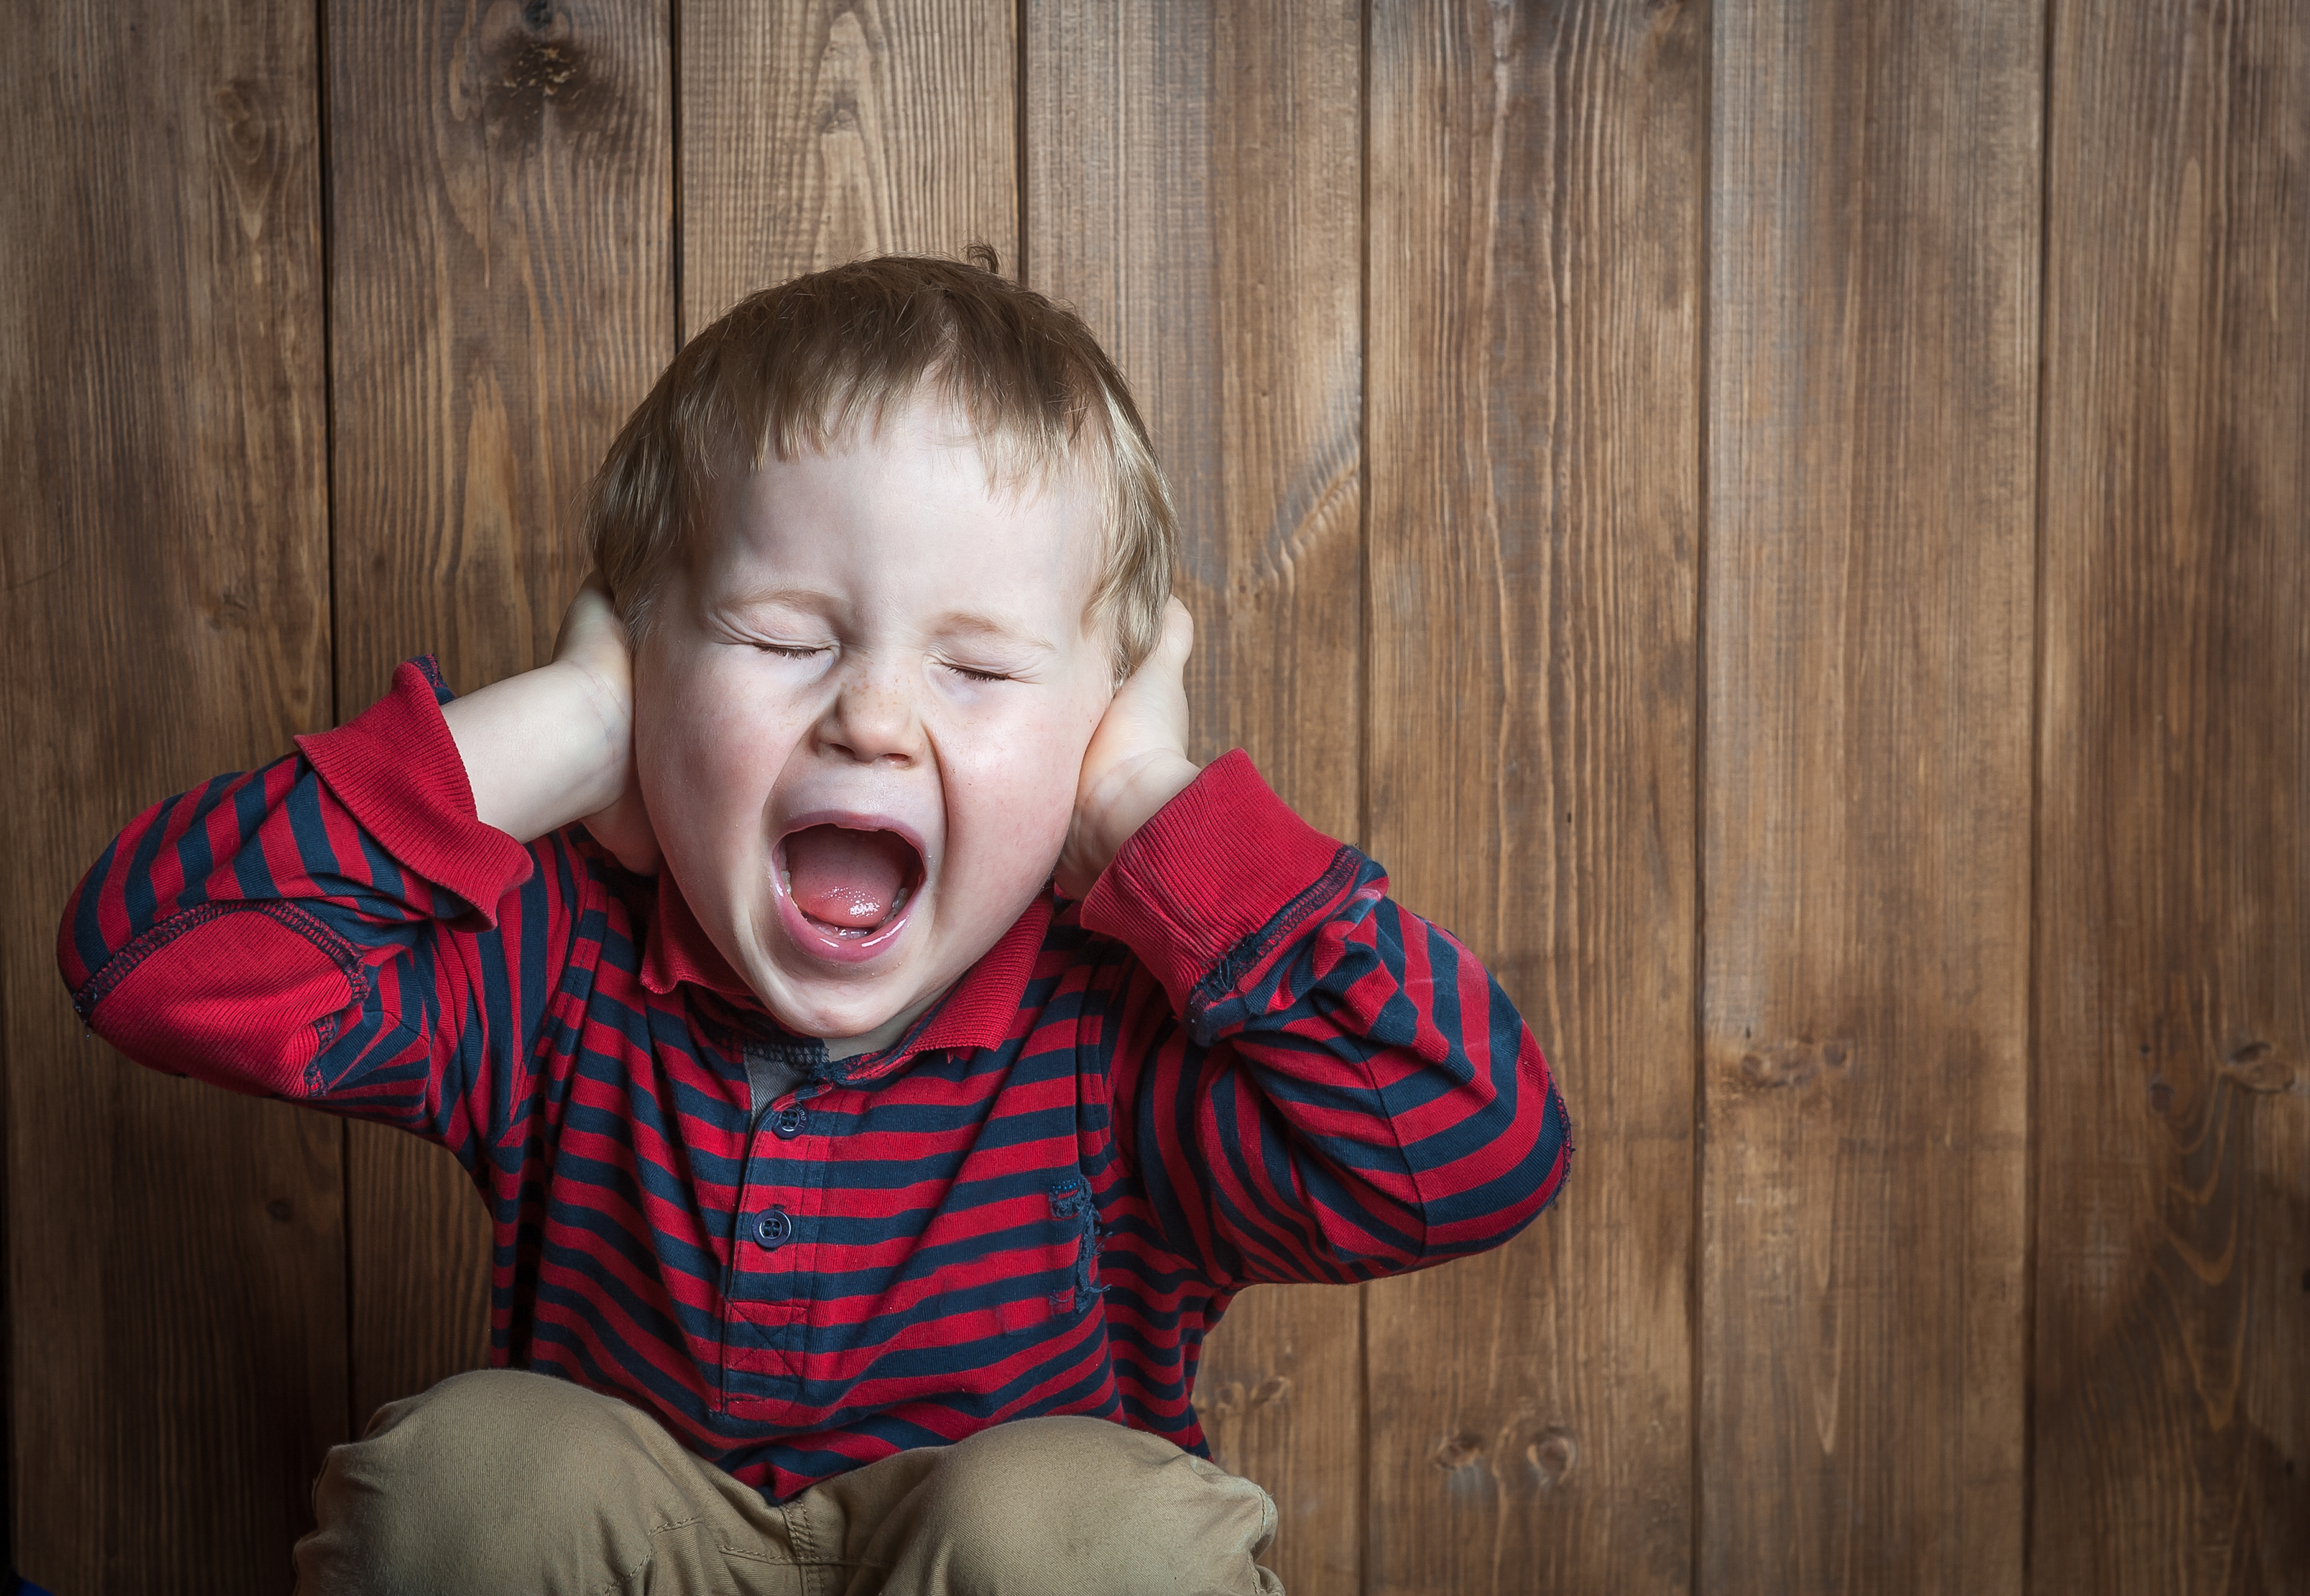 Are kids with asthma, AD prone to behavioral disorders?